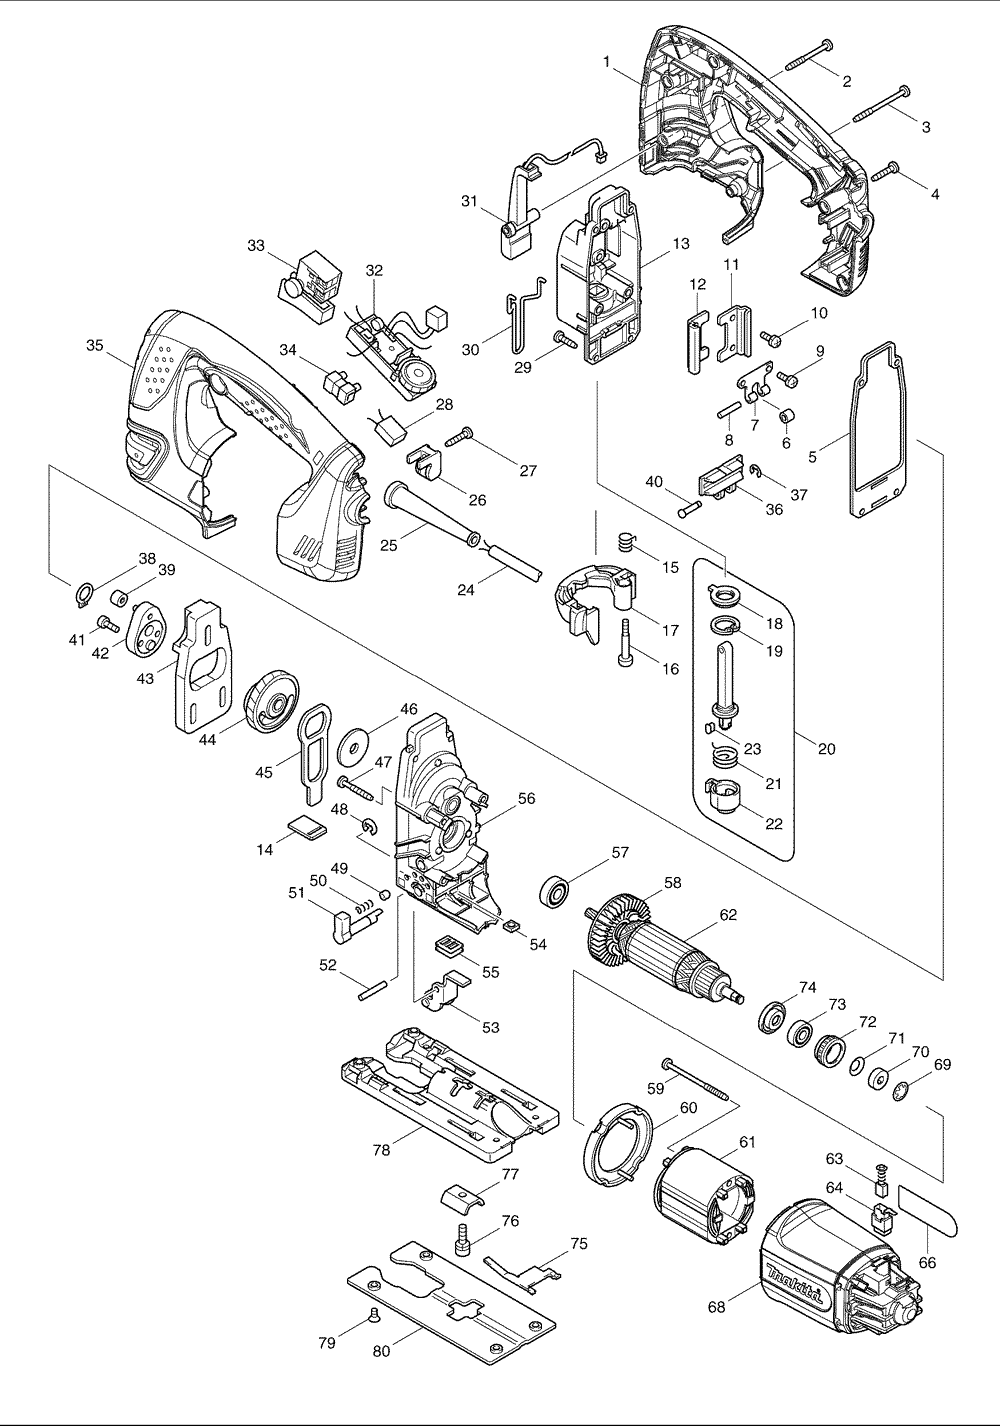 4350FCT Makita PB makita hr2455 wiring diagram conventional fire alarm wiring diagram Basic Electrical Wiring Diagrams at honlapkeszites.co